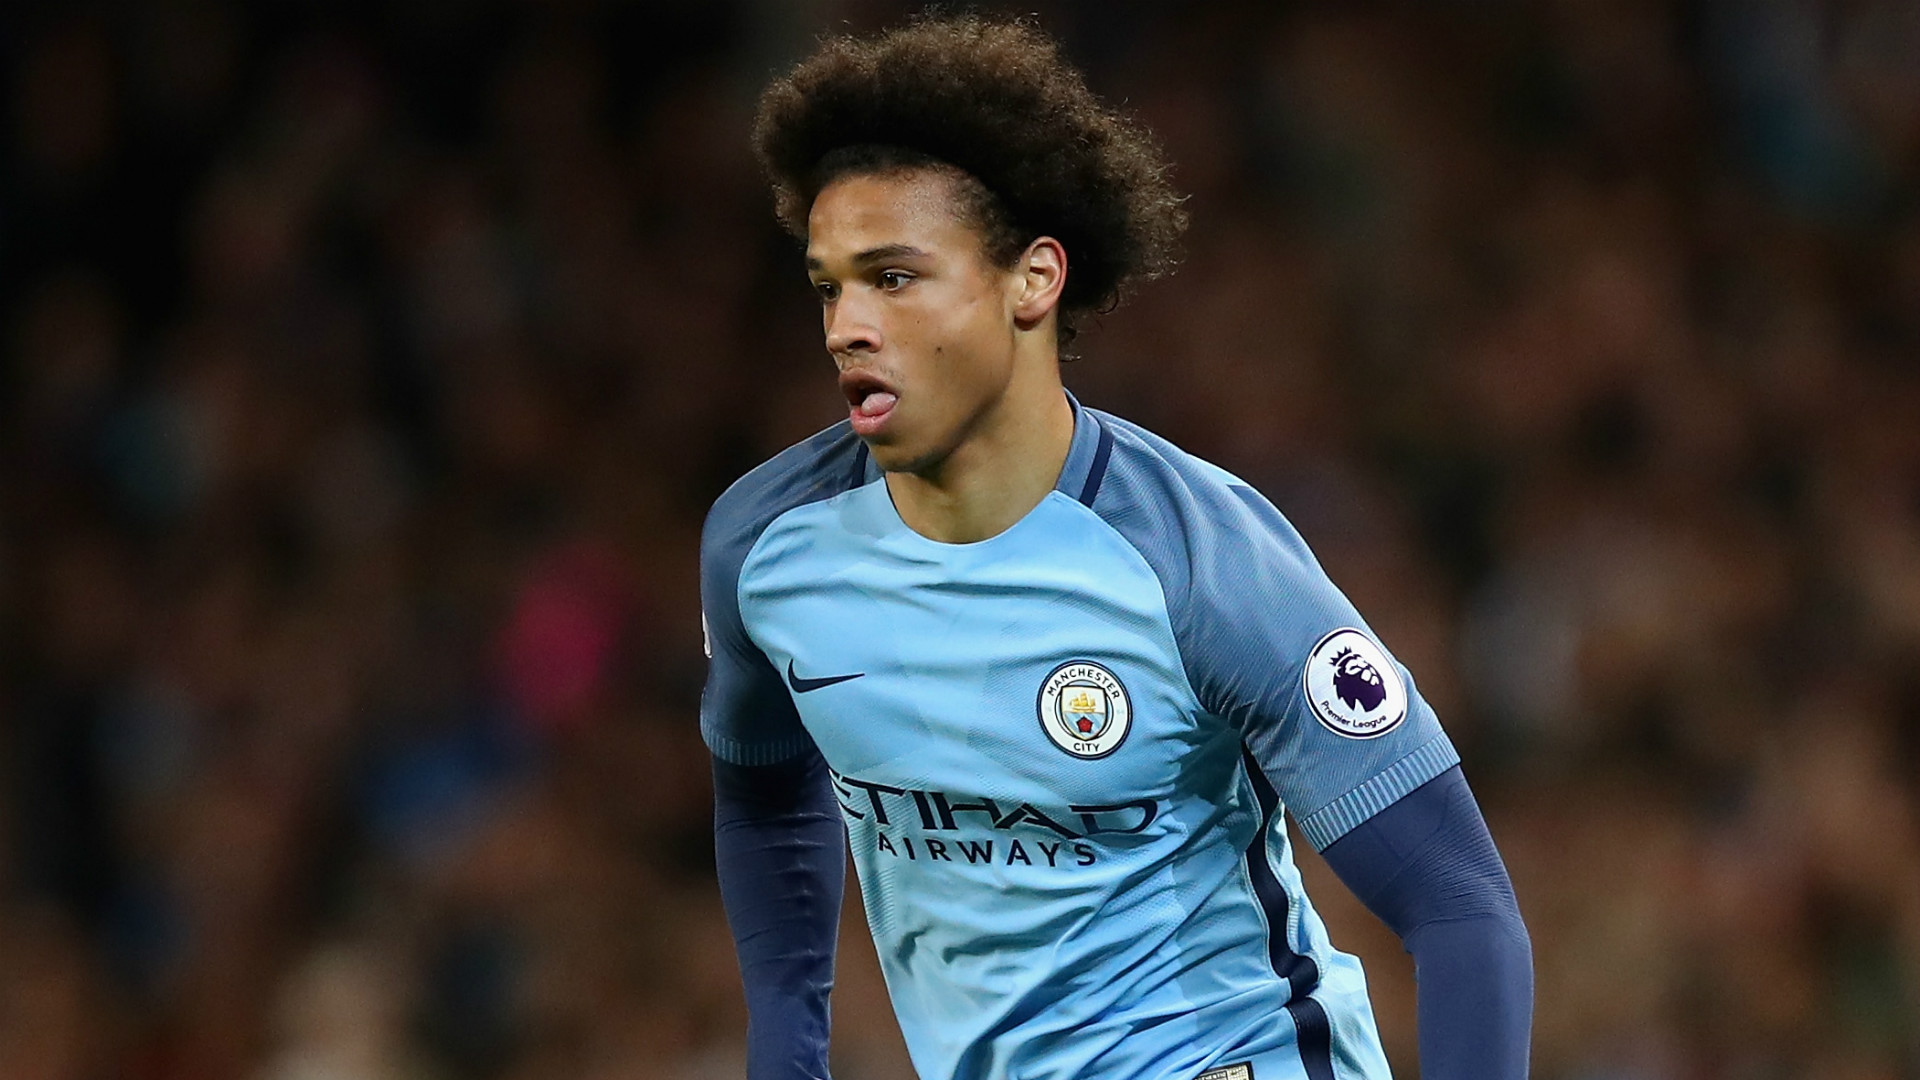 Leroy Sane Manchester City Premier League